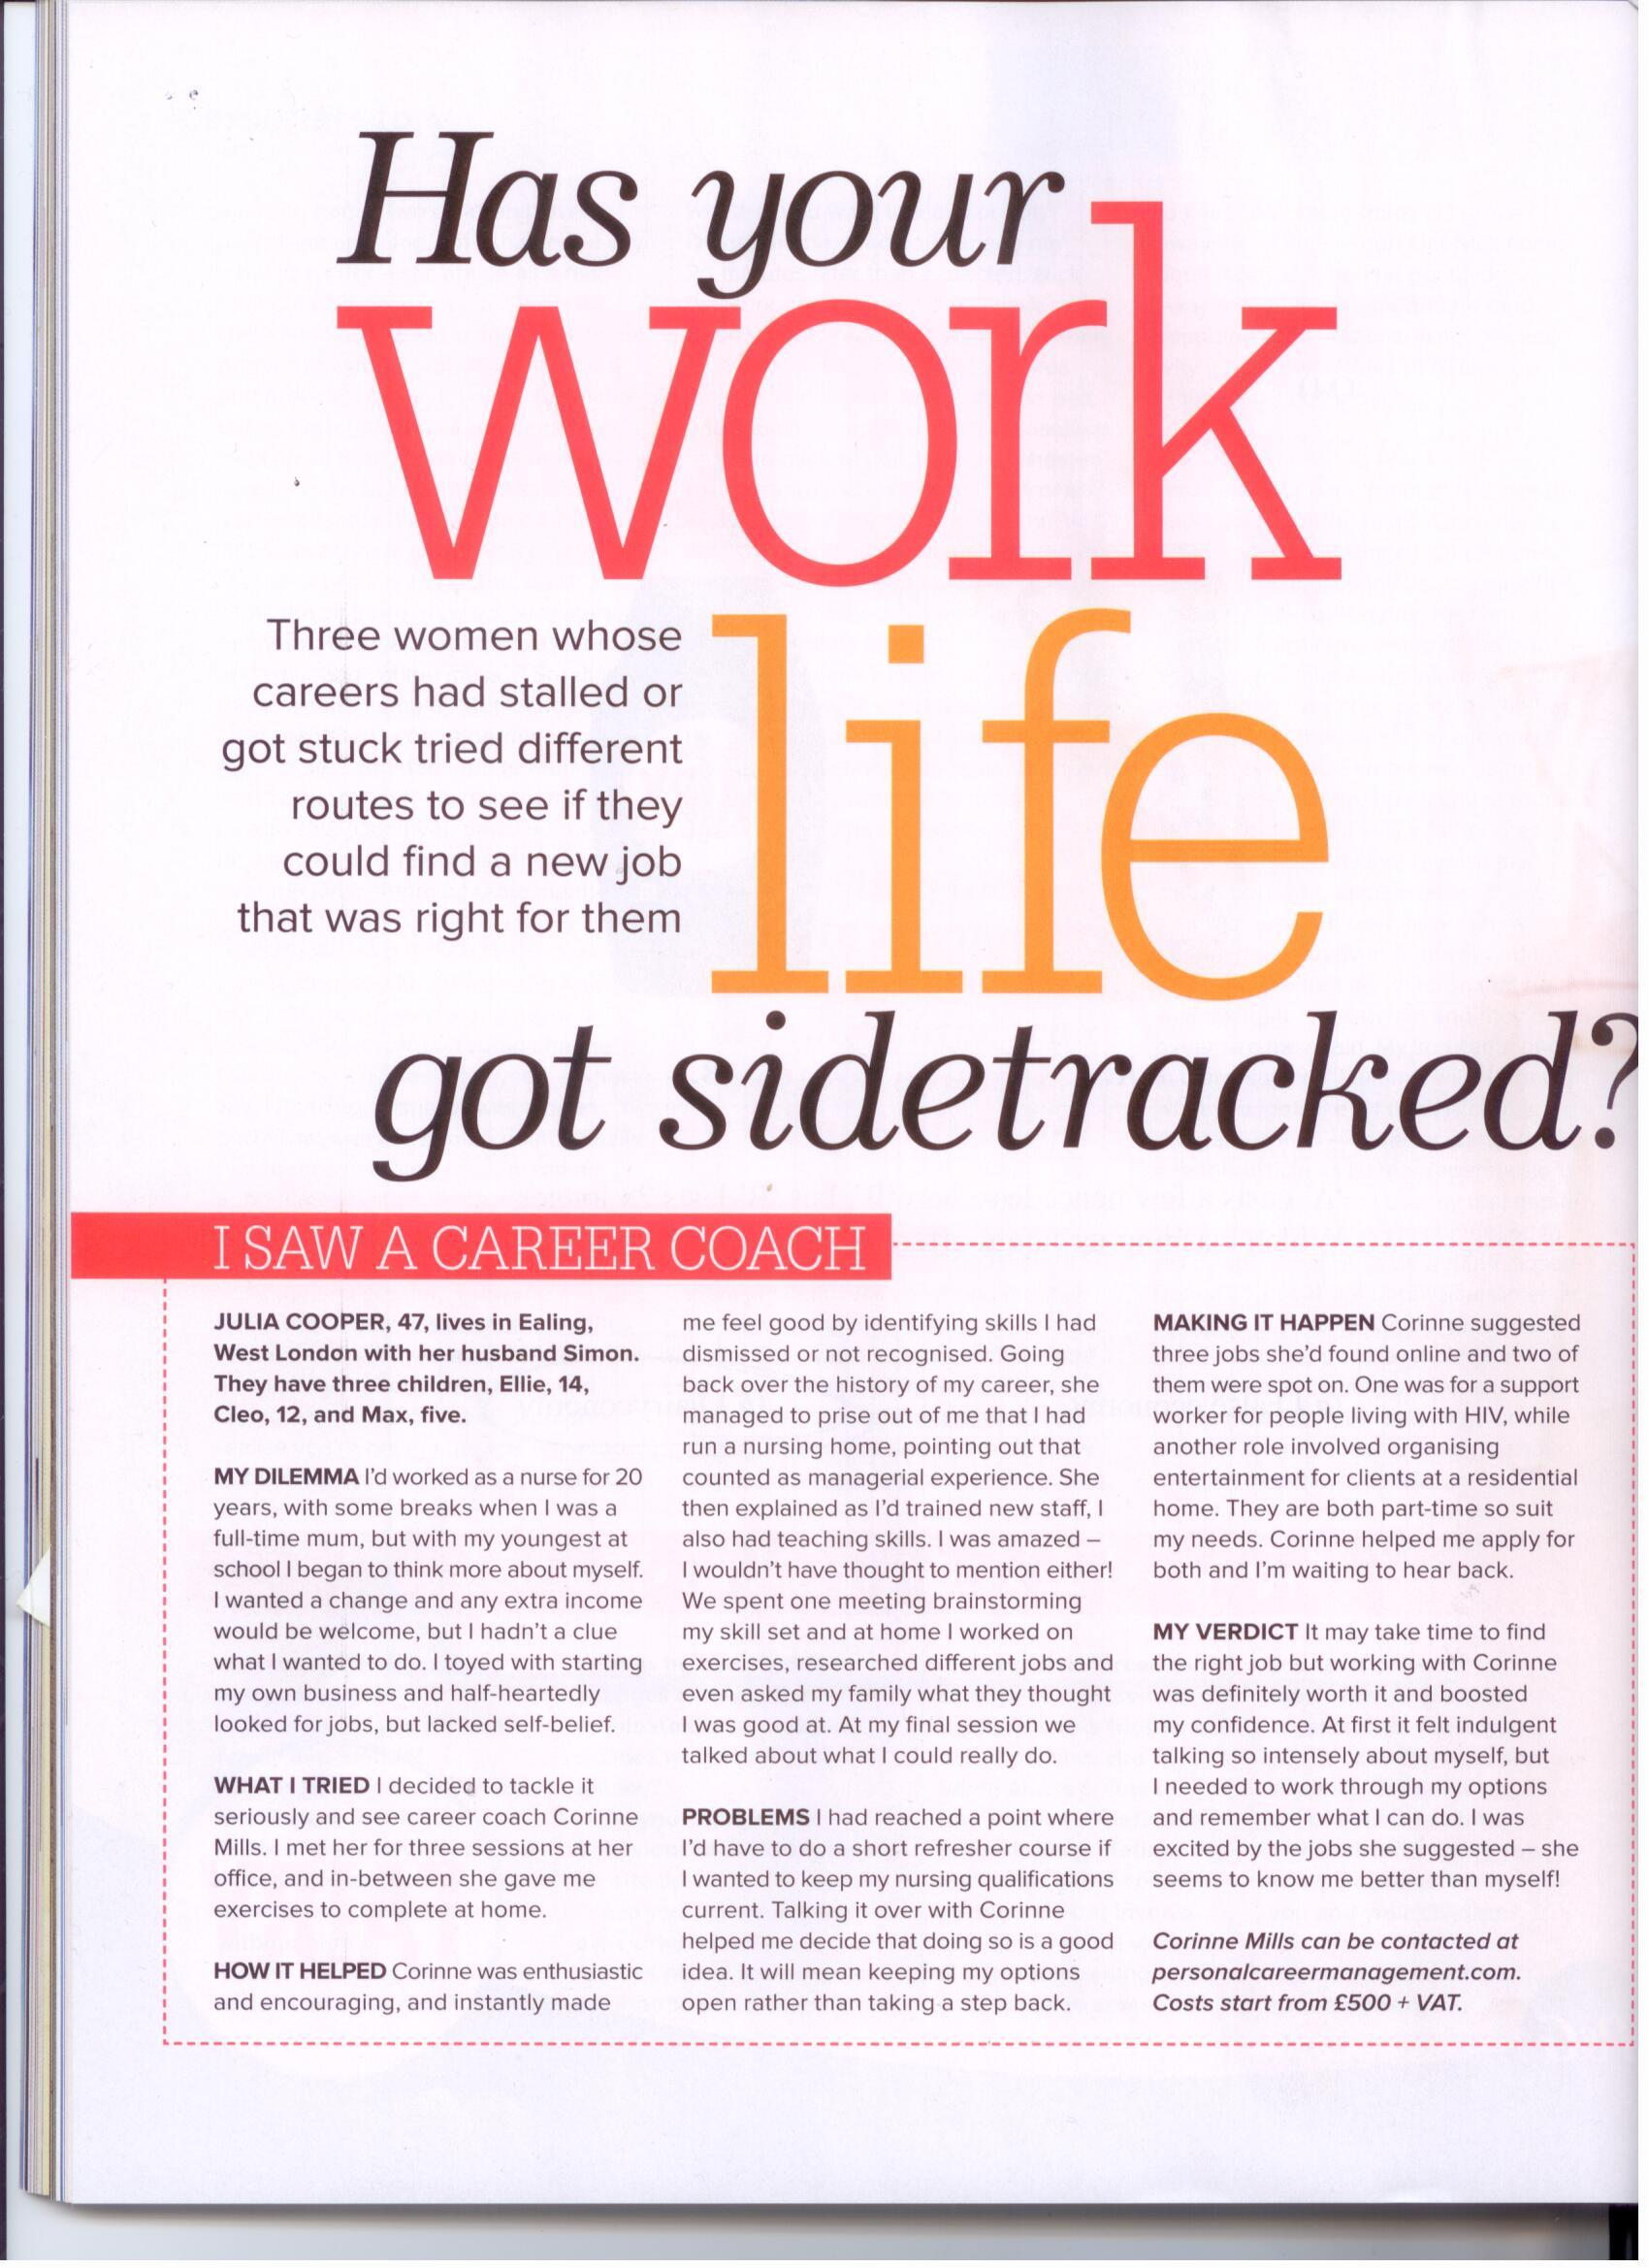 Woman & Home: Has your work life got sidetracked?